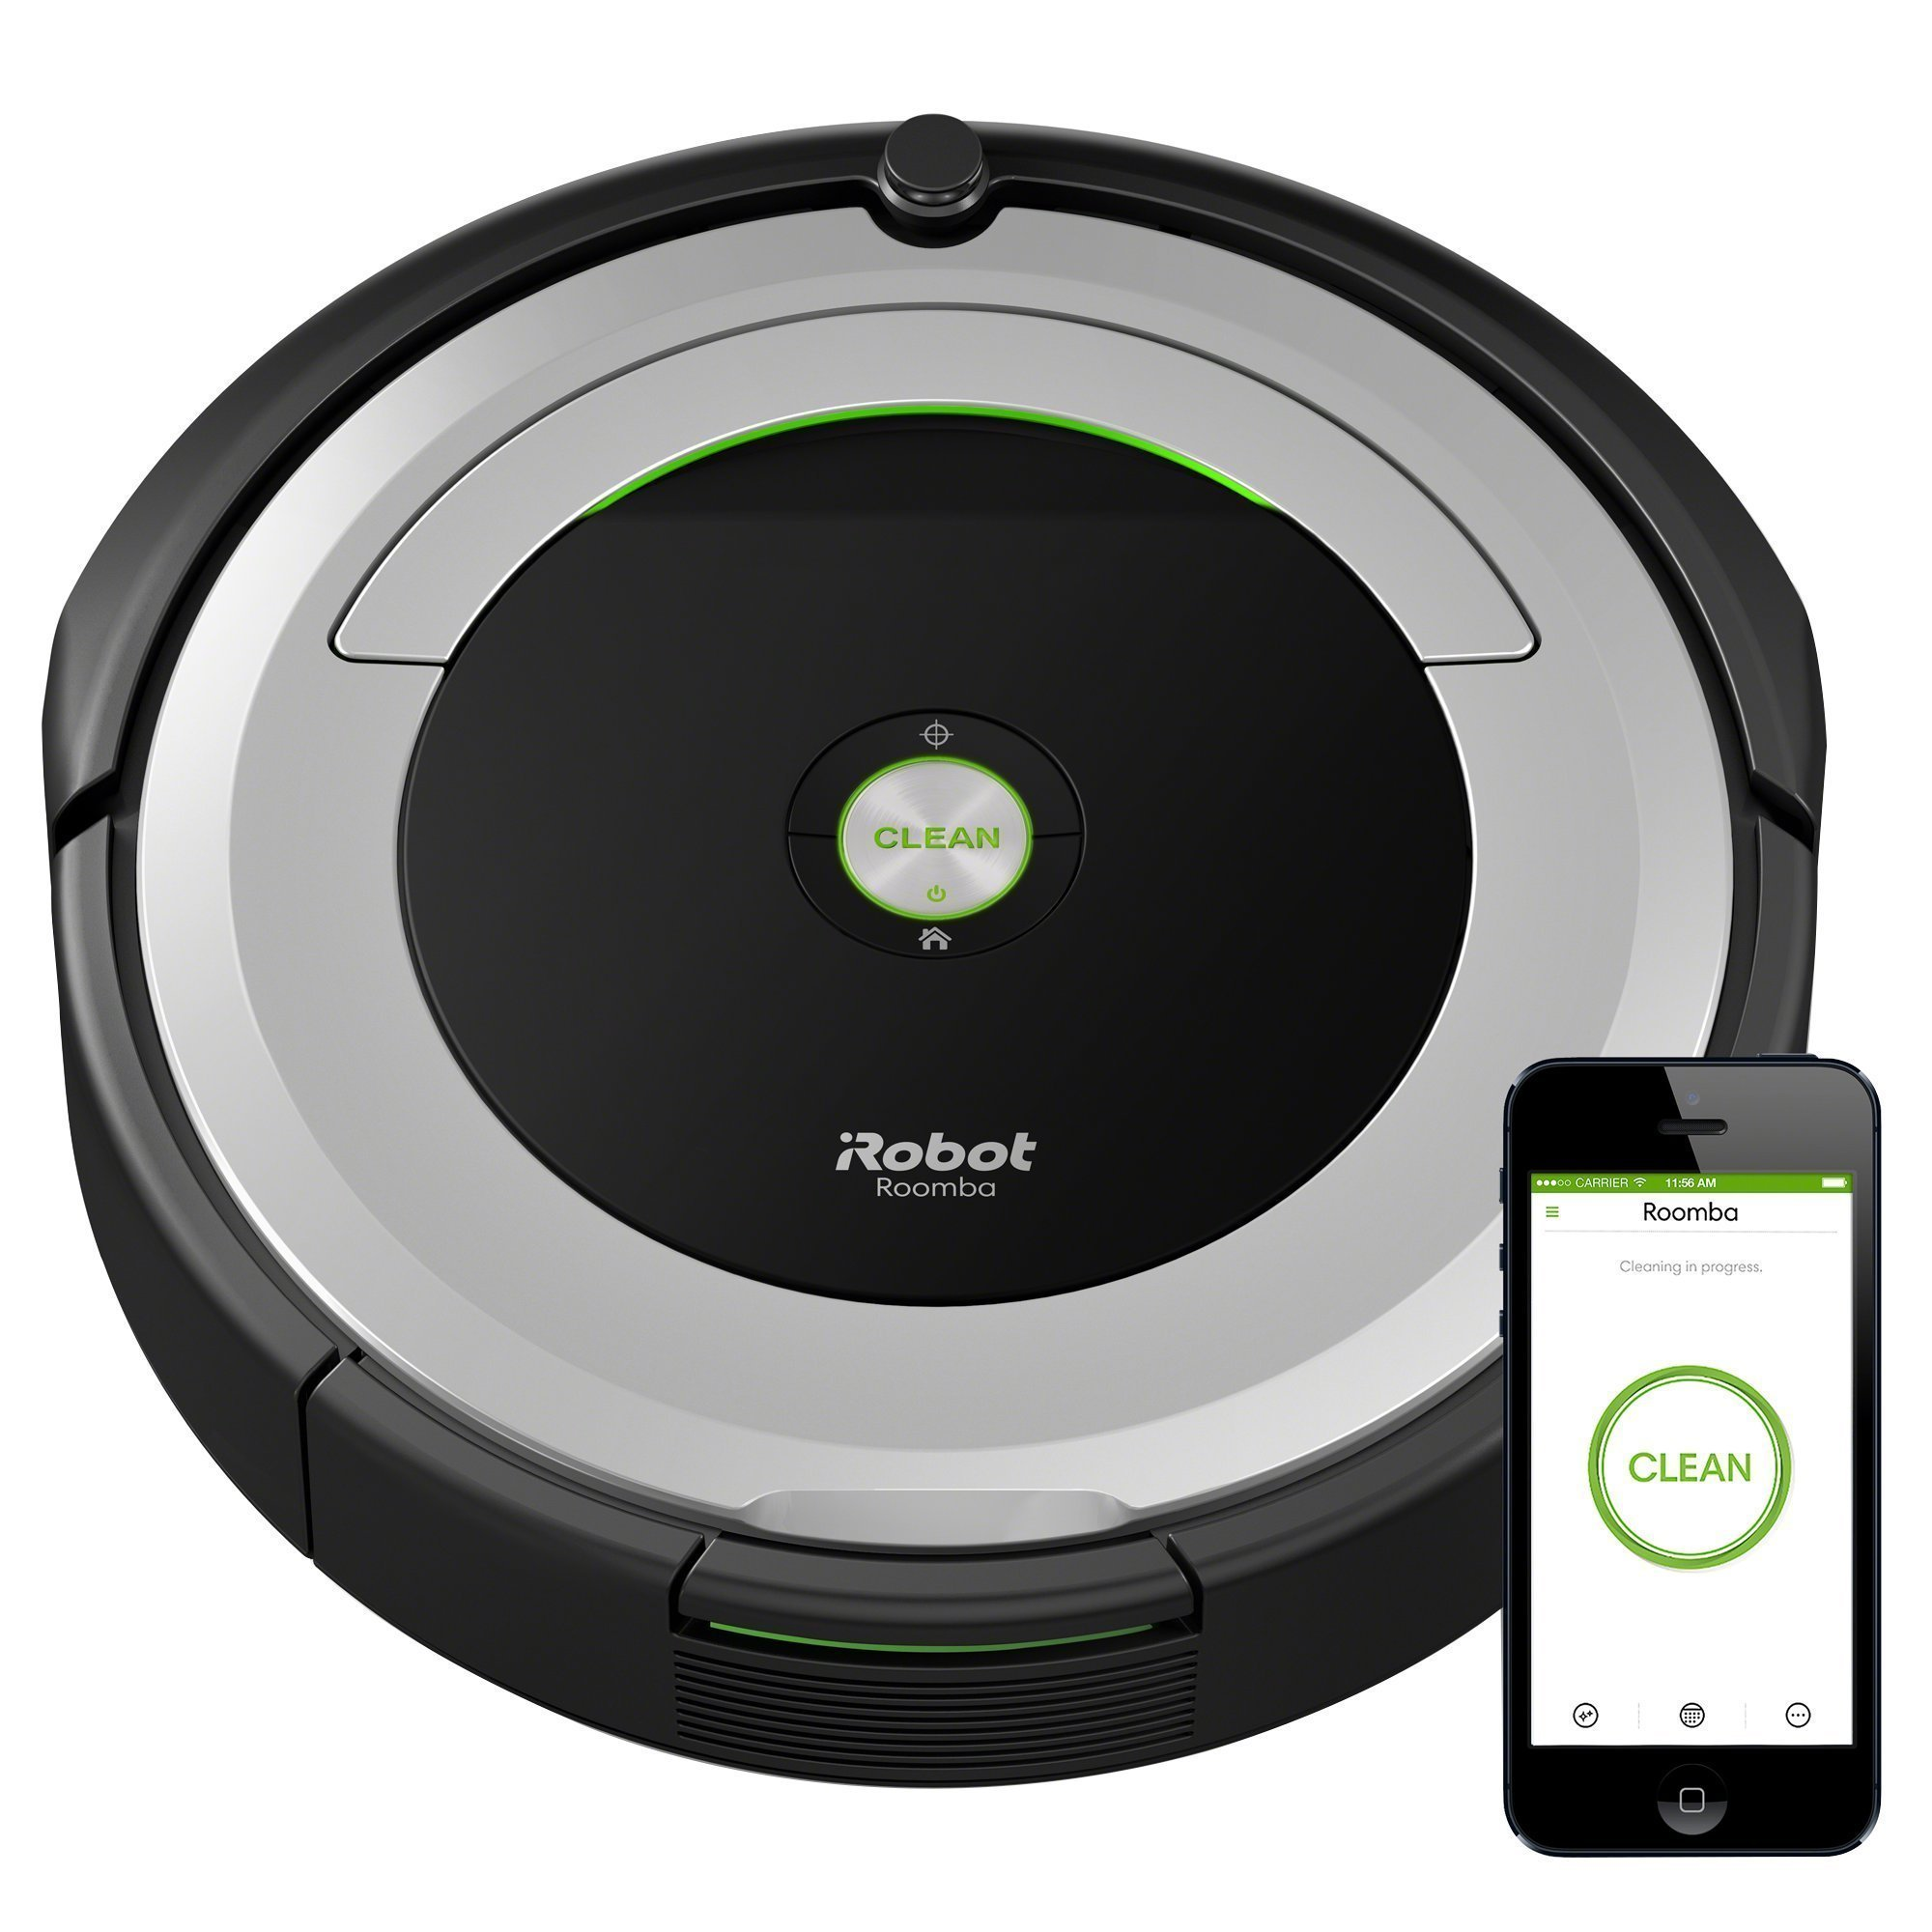 iRobot Roomba 690 Robot Vacuum with Wi-Fi Connectivity (Renewed) by iRobot